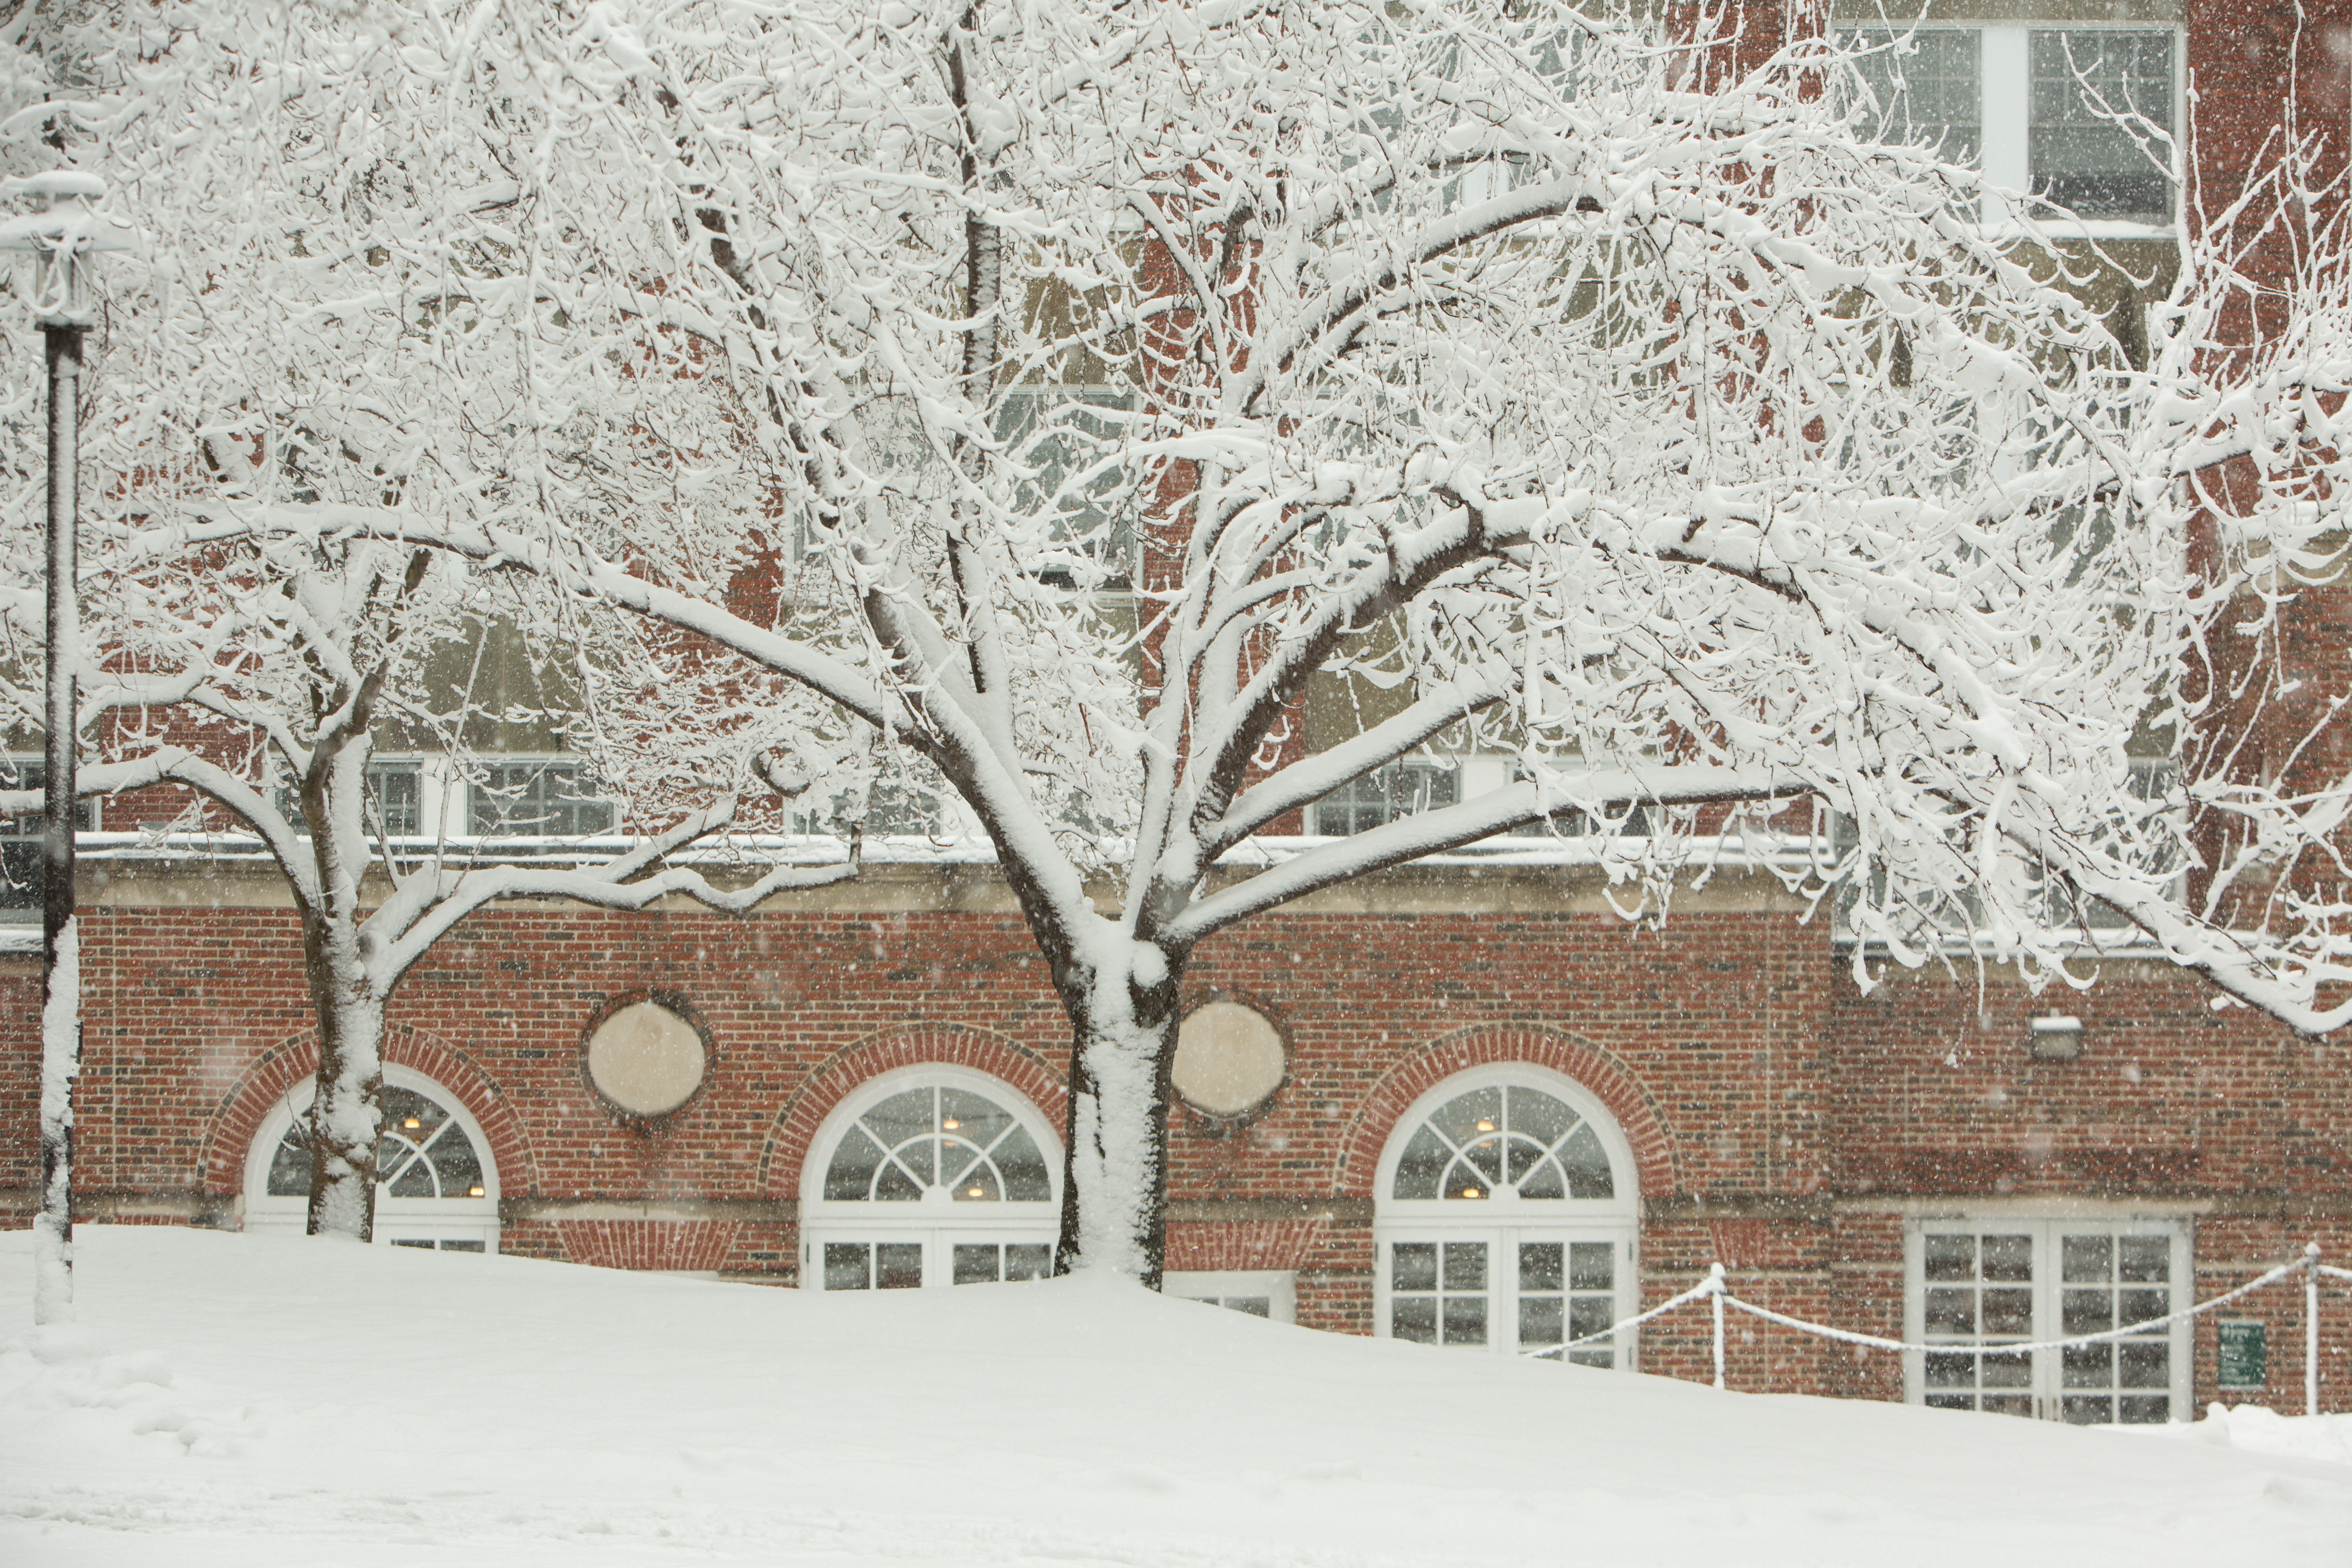 A snowy scene on Doble Campus at Lesley University.